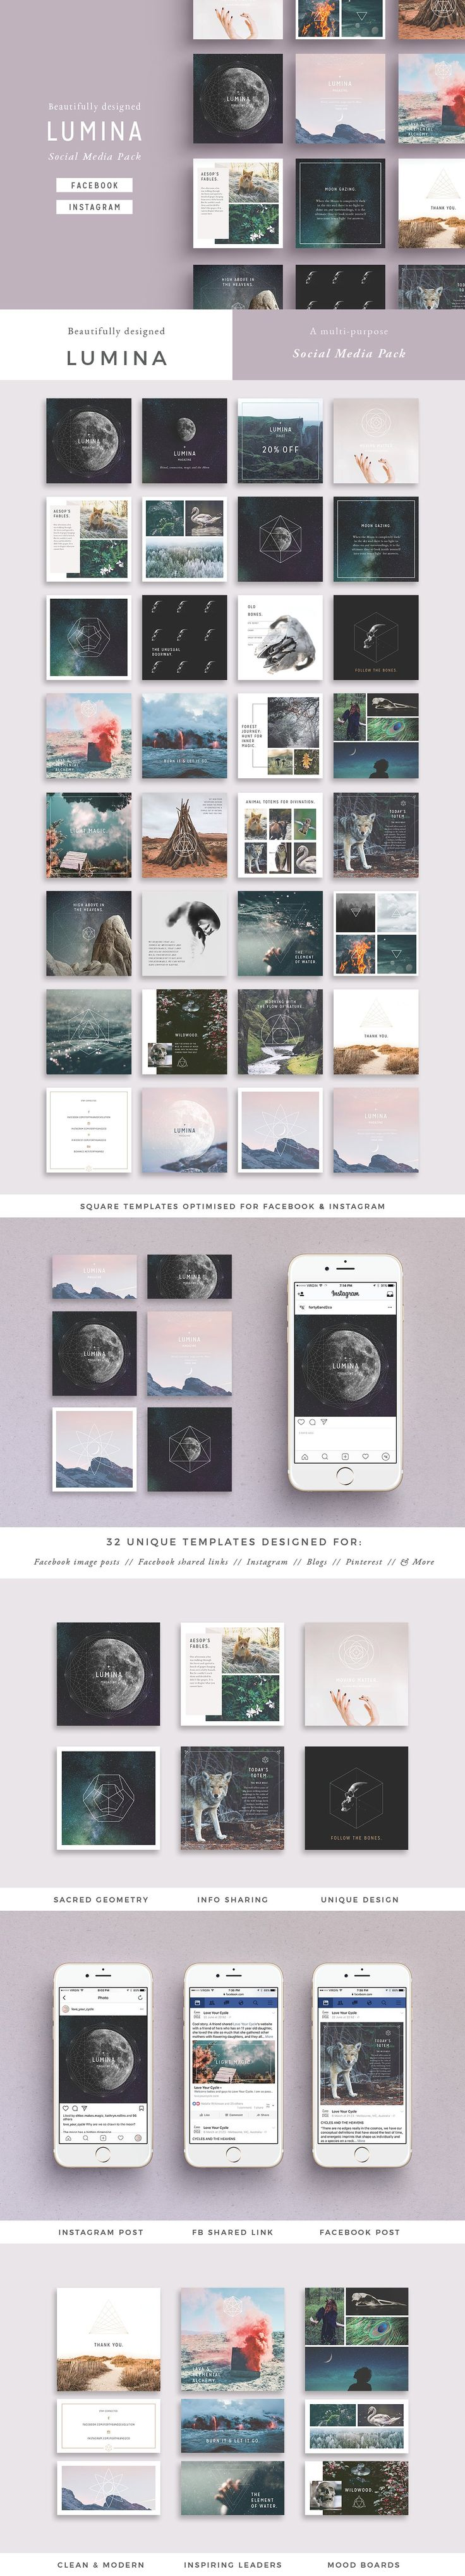 LUMINA Social Media Pack by 46&2 Collective on @creativemarket #AD